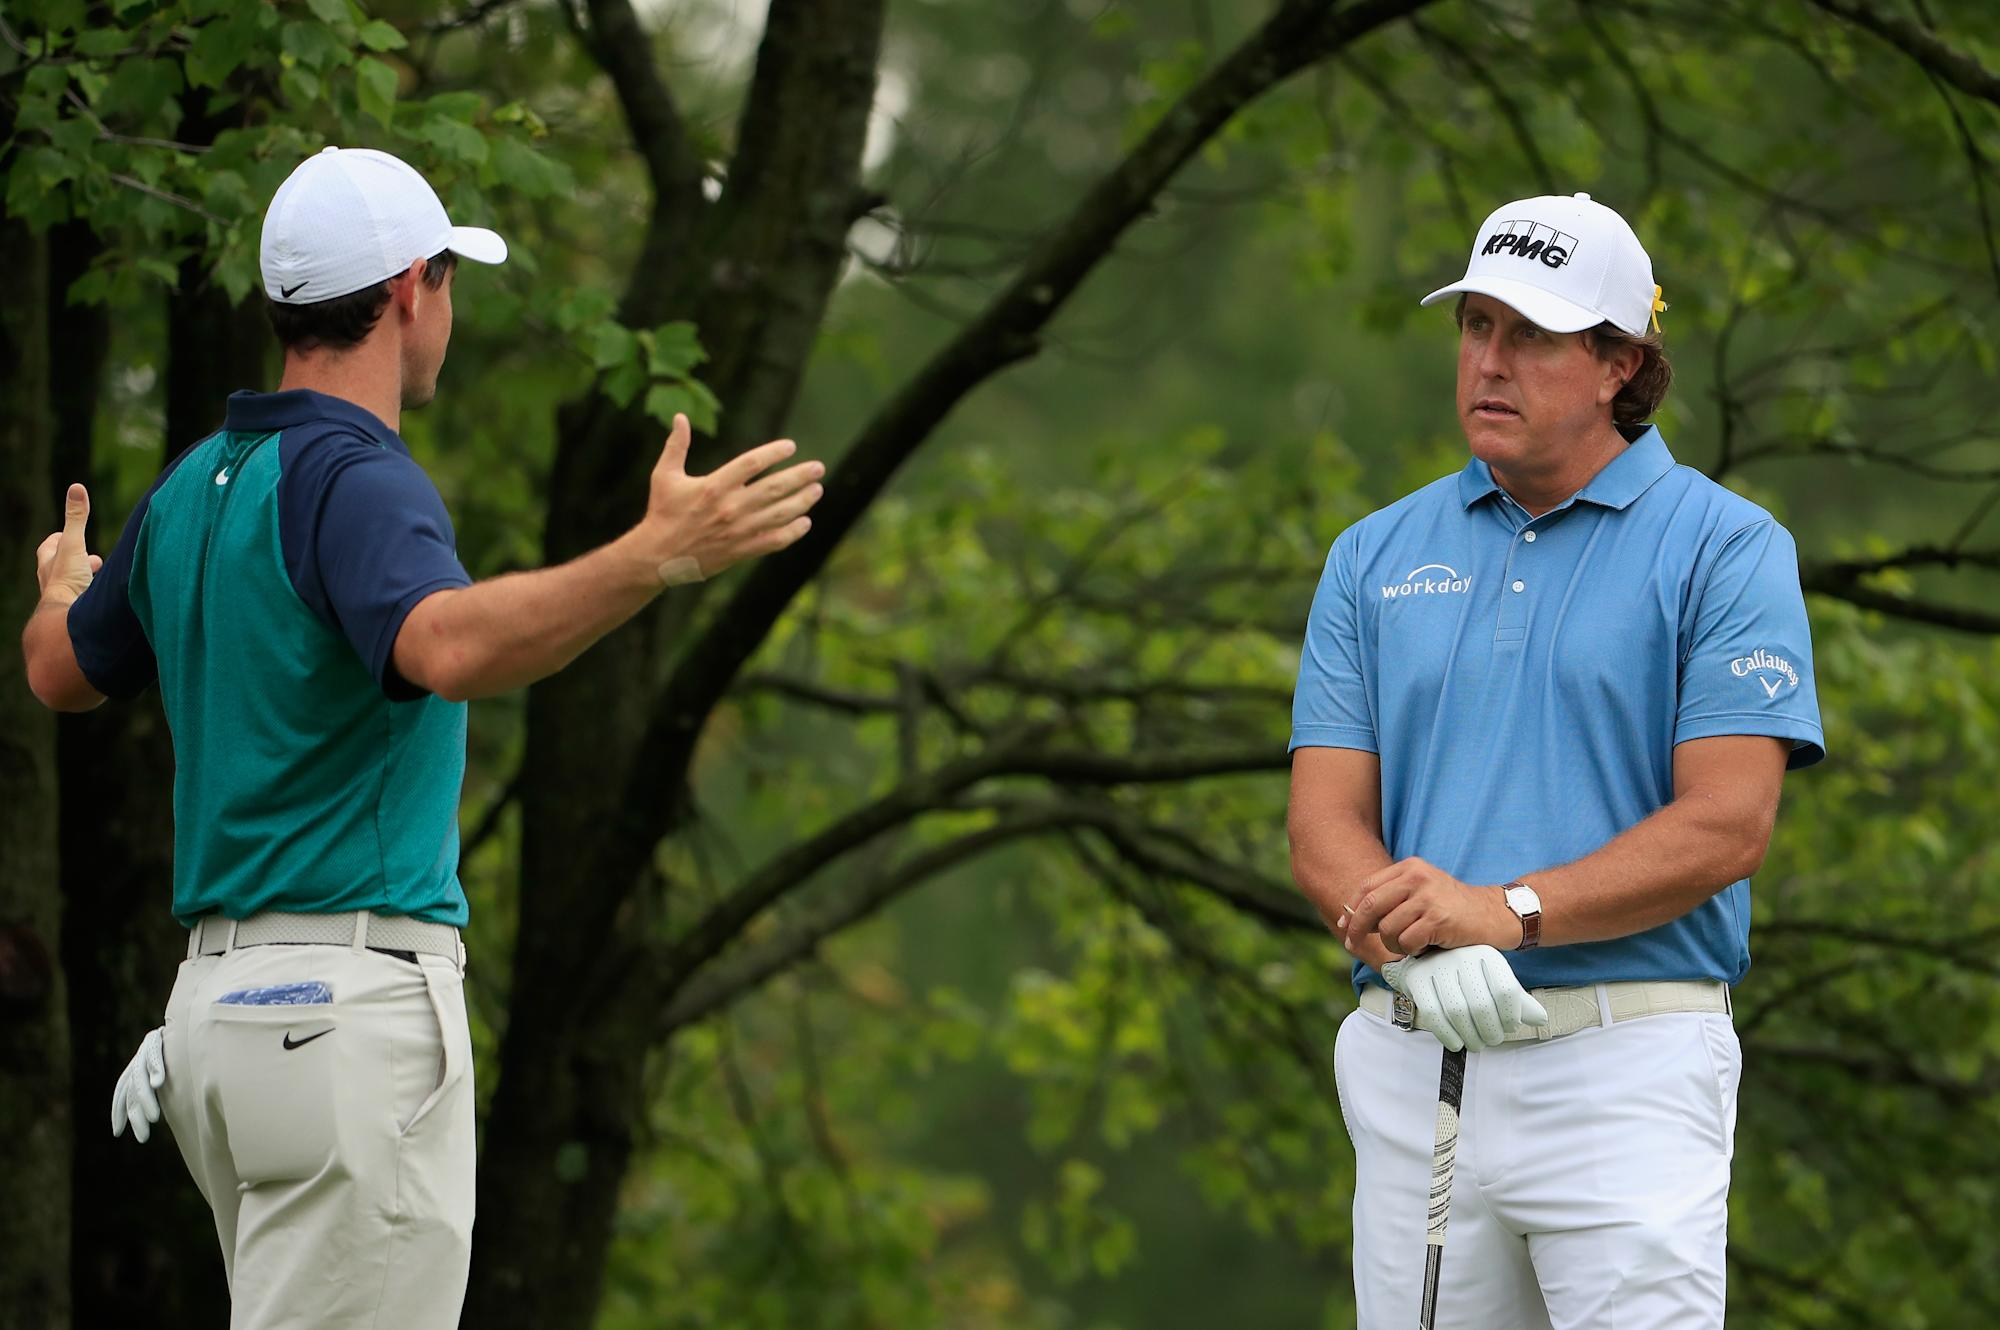 Rory McIlroy calls proposed golf super league a 'money grab;' Phil Mickelson thinks it's 'interesting'